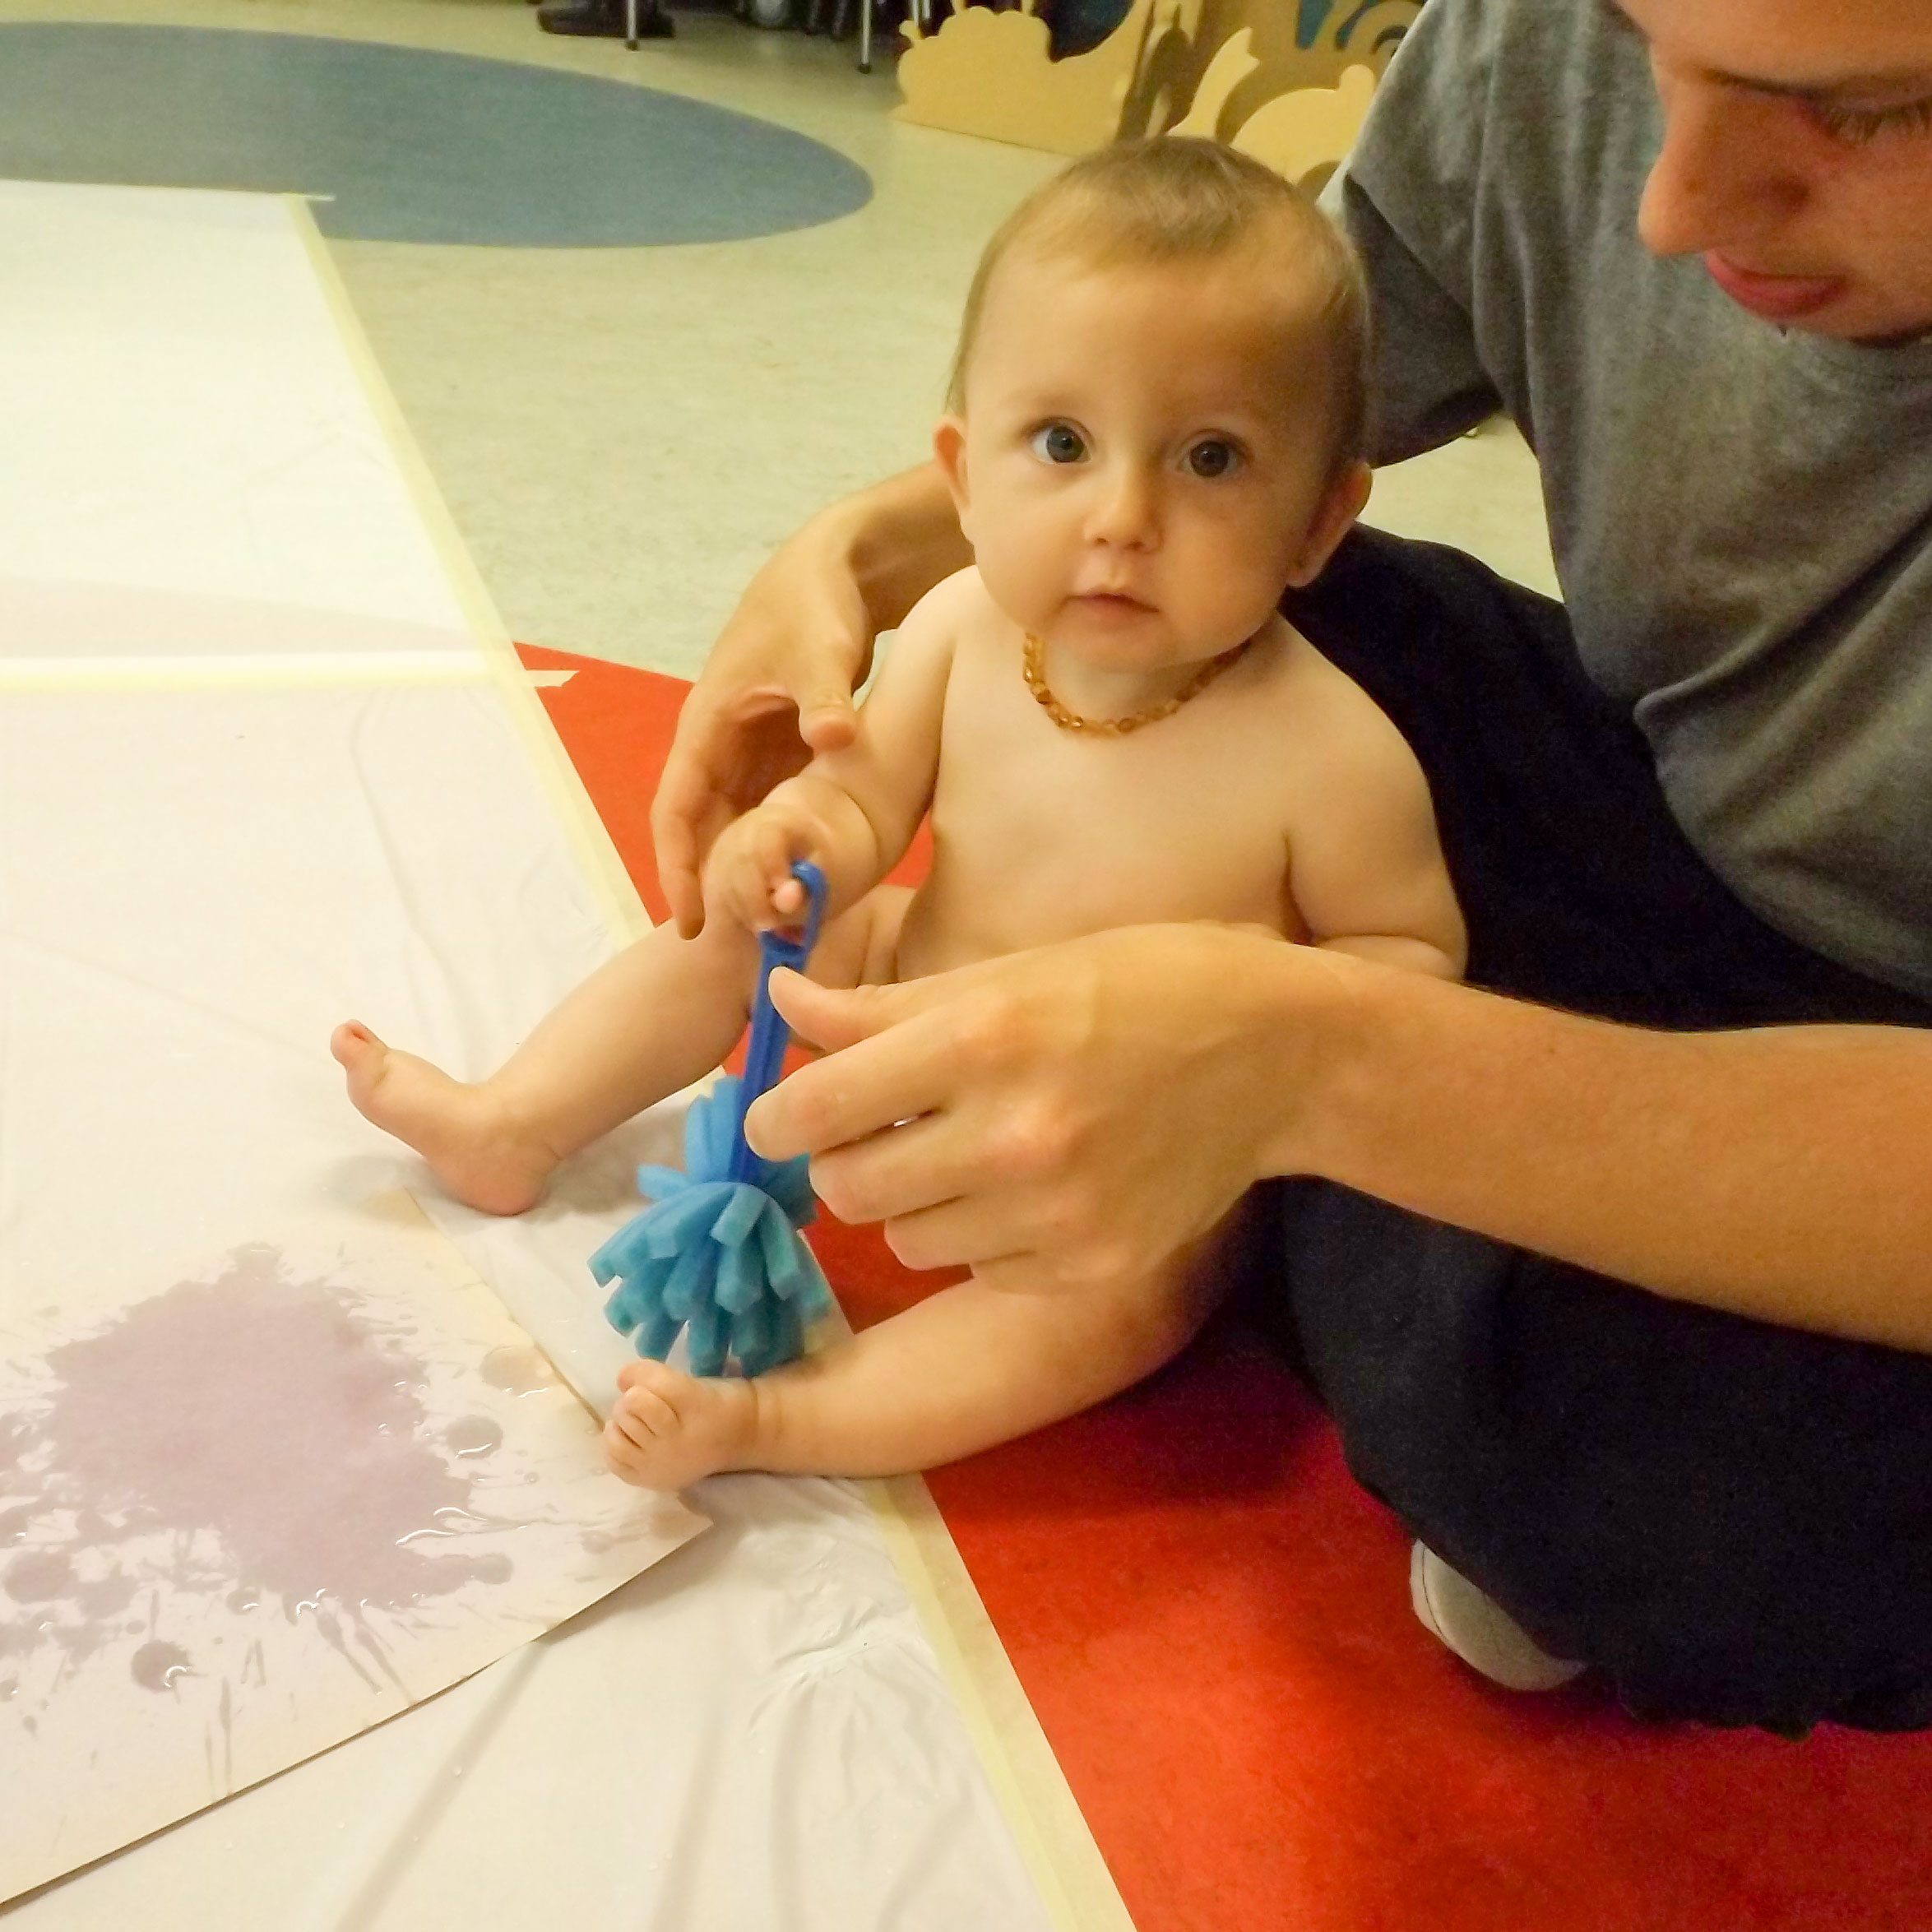 Parent with baby play with water and sponge on the colourful library floor. Baby is looking directly into the camera